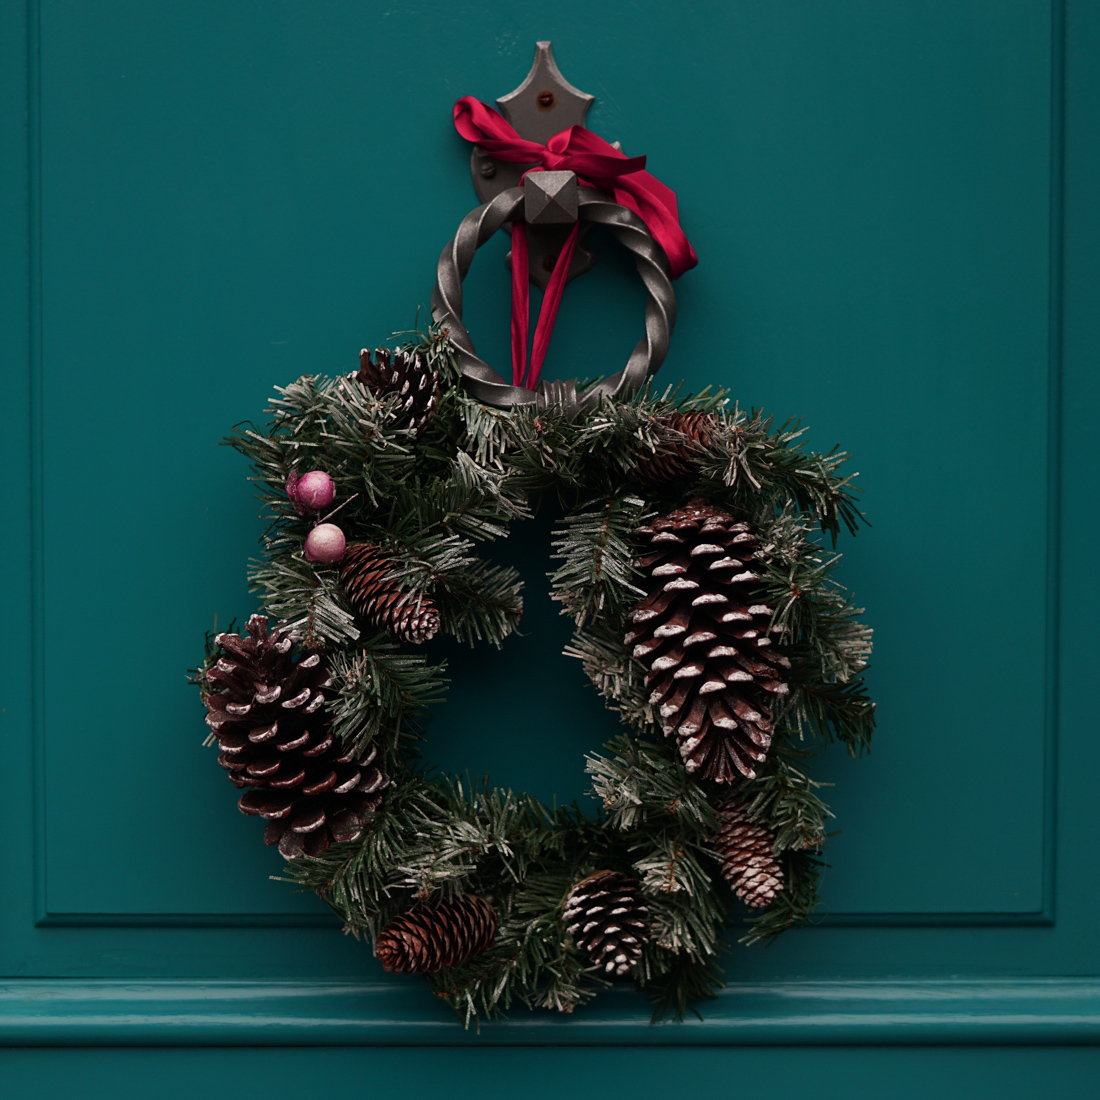 BEATING-THE-AFTER-CHRISTMAS-BLUES-ALISON-WALLWORK-BLOG.jpg